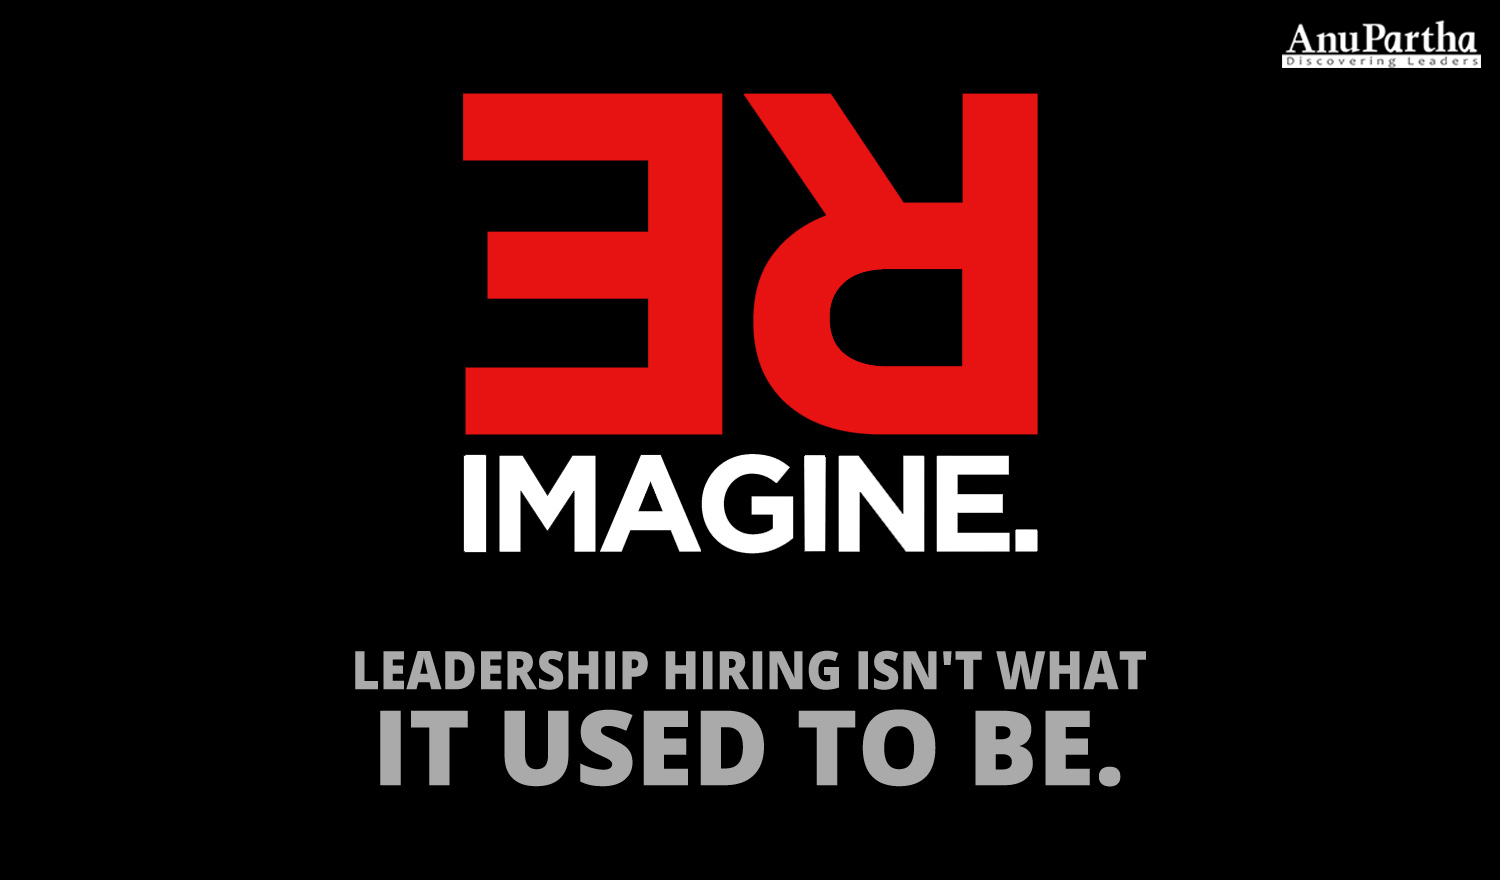 re-imaging-leadership-hiring